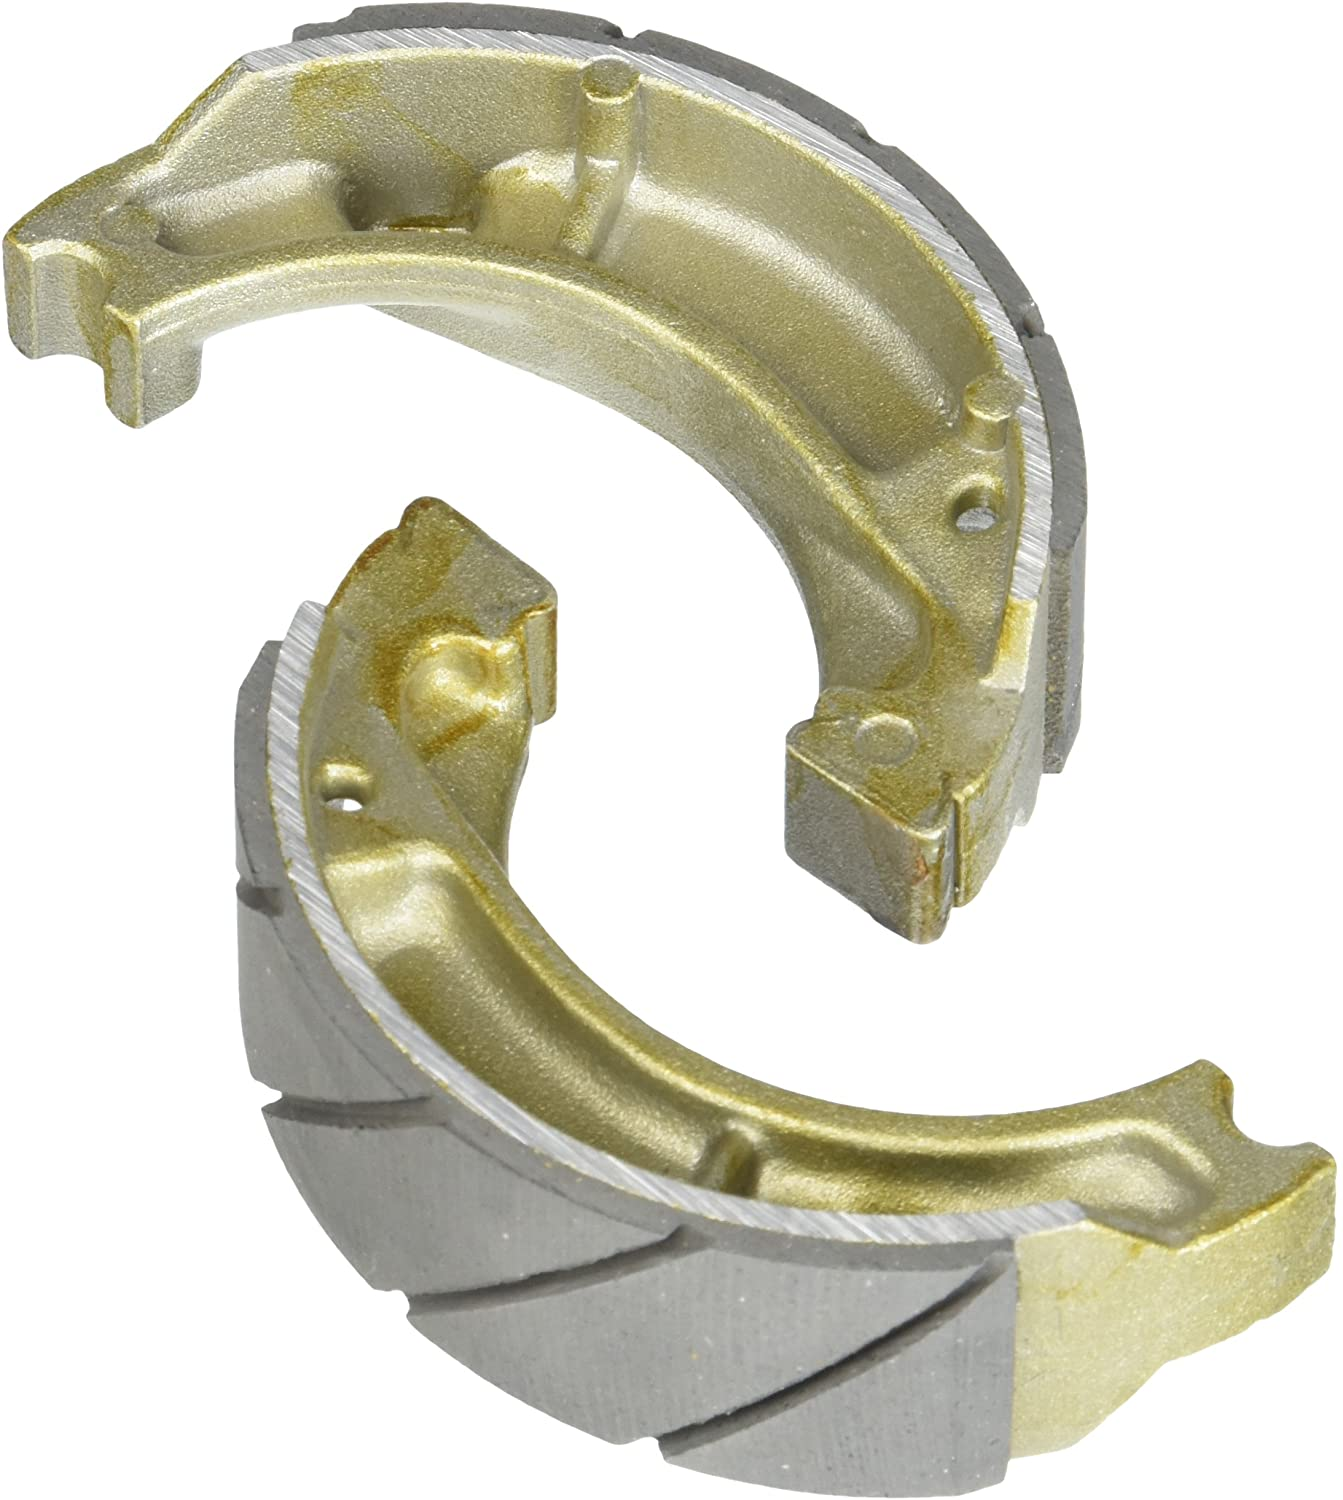 EBC Brakes 323G Water Grooved Brake Shoe